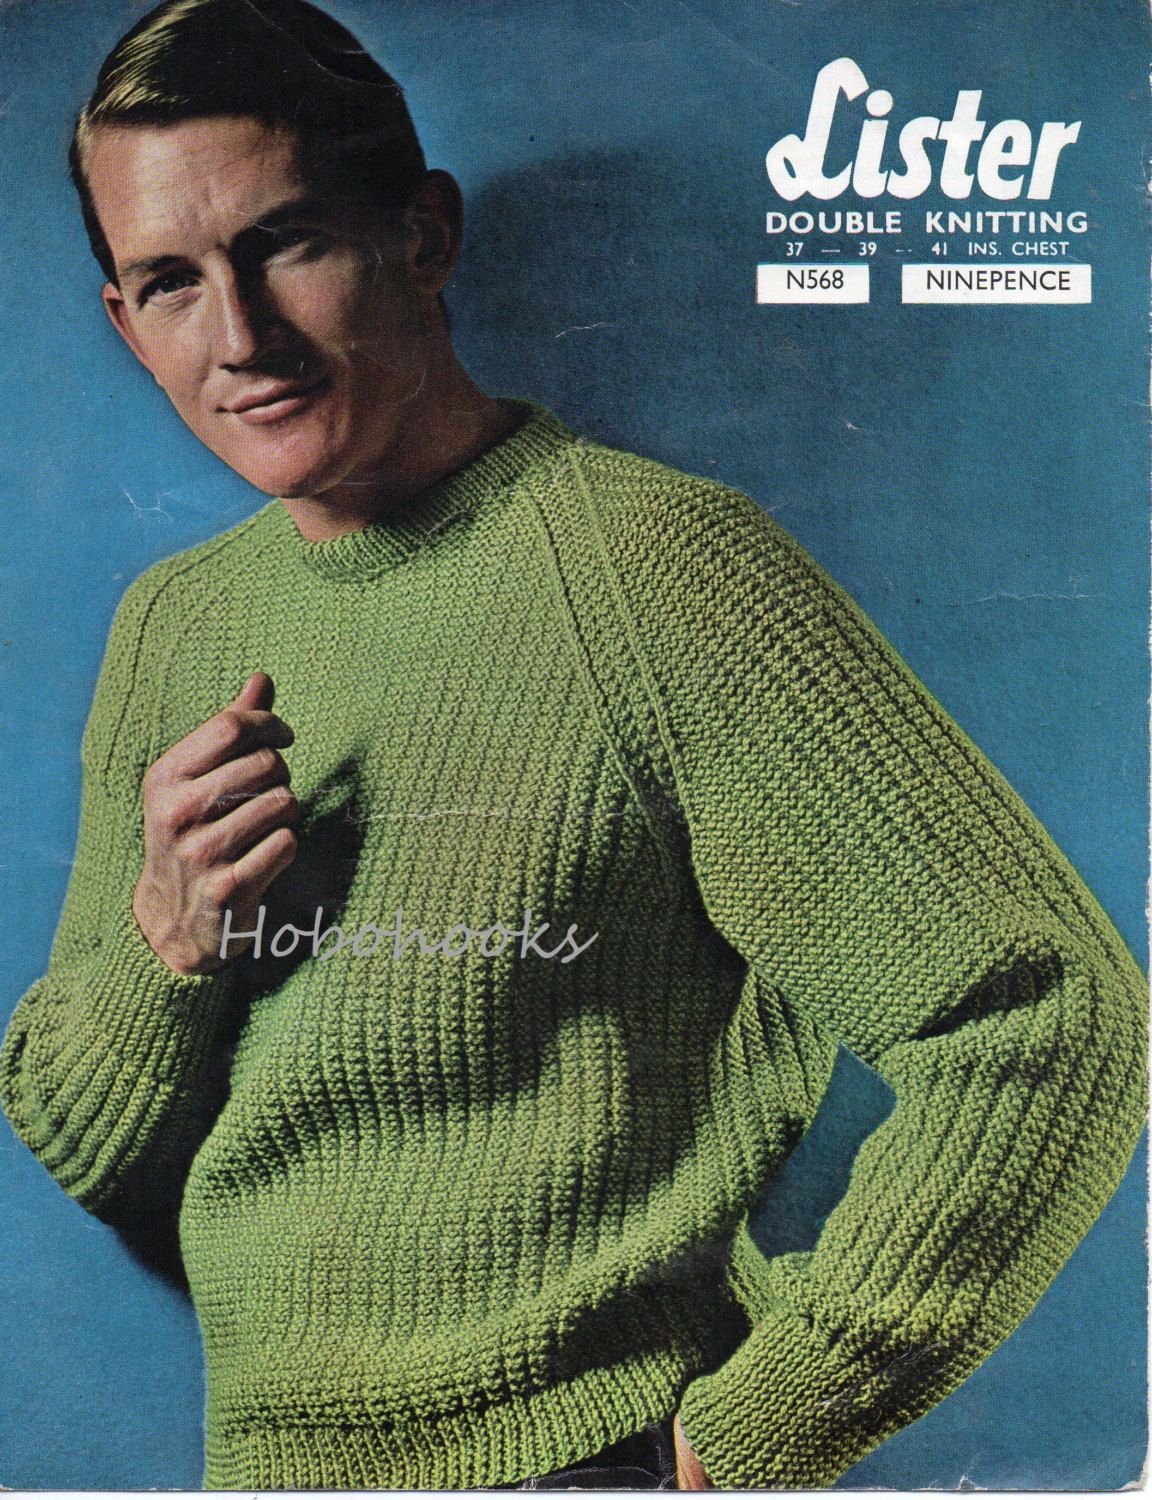 05f5ec5aa M6007 Mens ribbed sweater knitting pattern fishermans rib sweater ribbed  jumper crew neck 37-41 inch DK mens Knitting Pattern PDF instant download  PLEASE ...